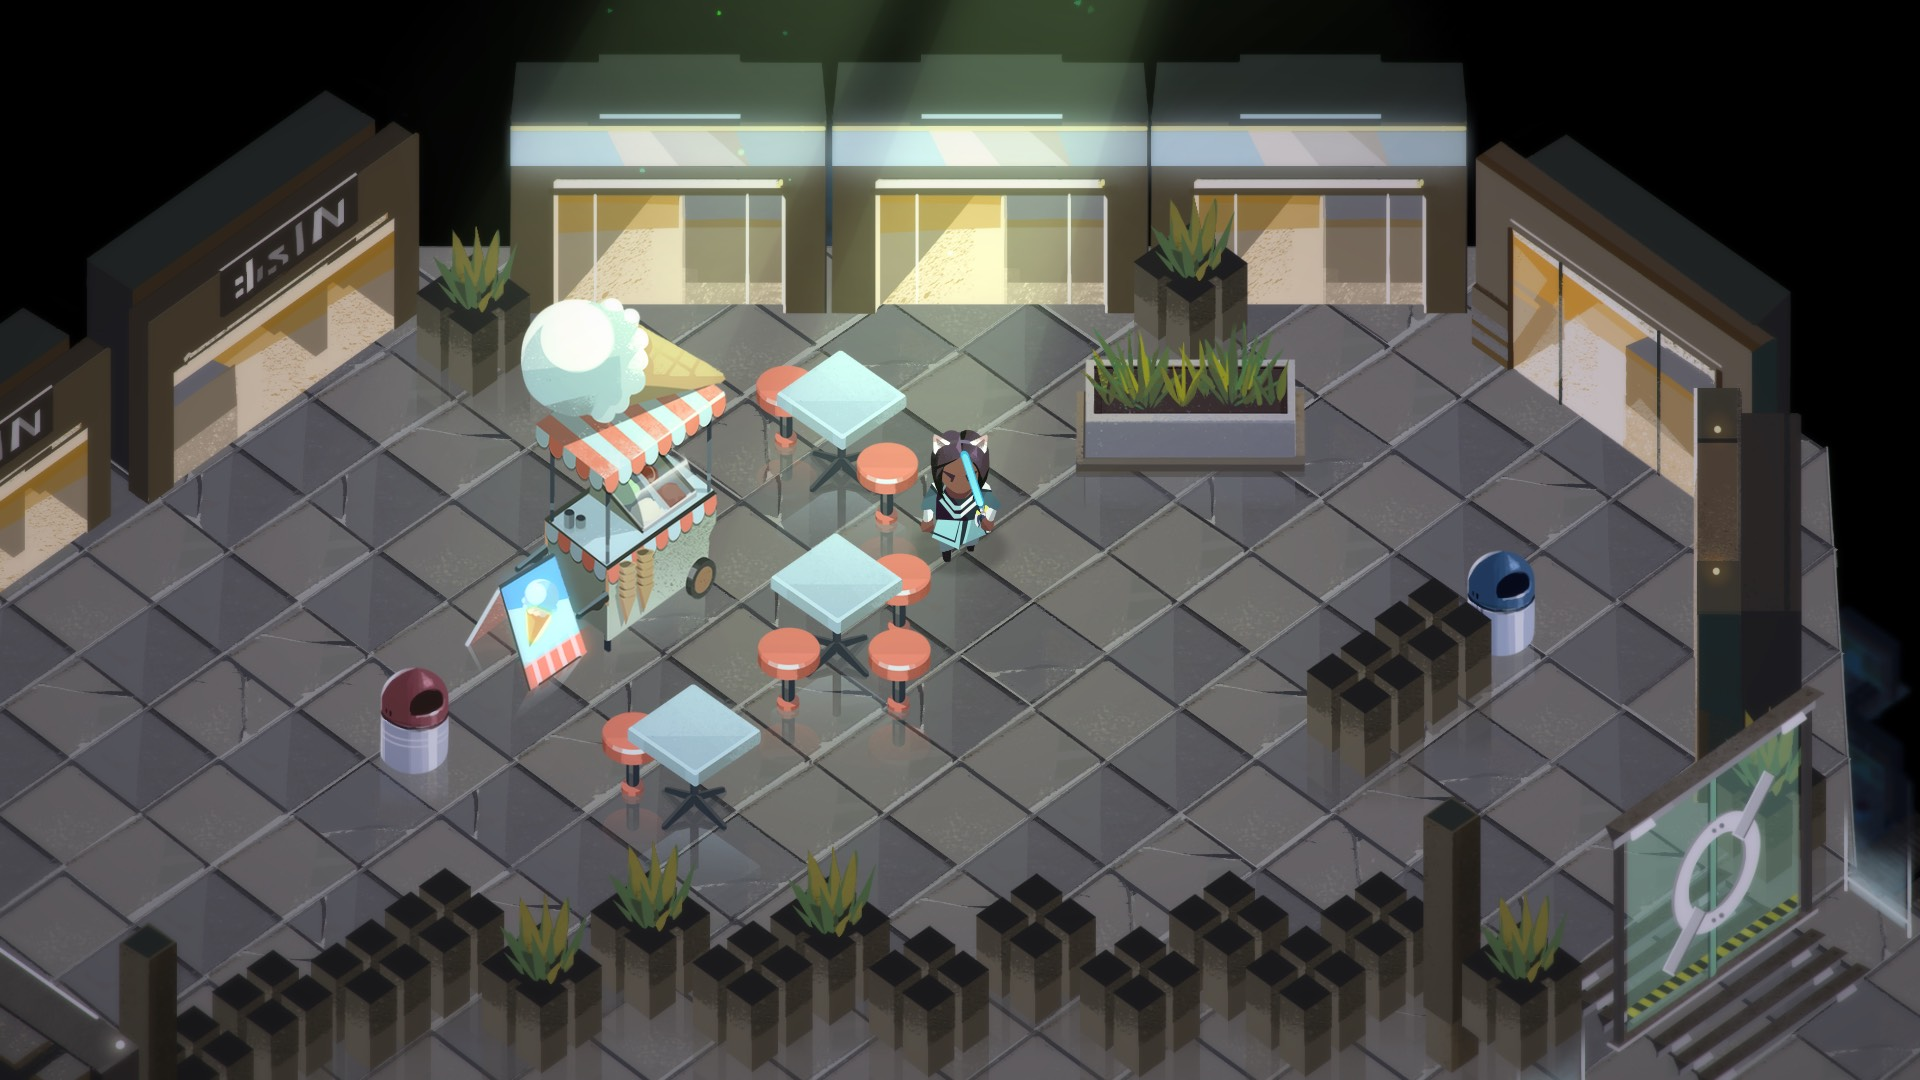 A screenshot of Boyfriend Dungeon, which is an overhead view of the dunj exploration. The floor is grey and cobbled, and there are tables and an ice cream van in the center.